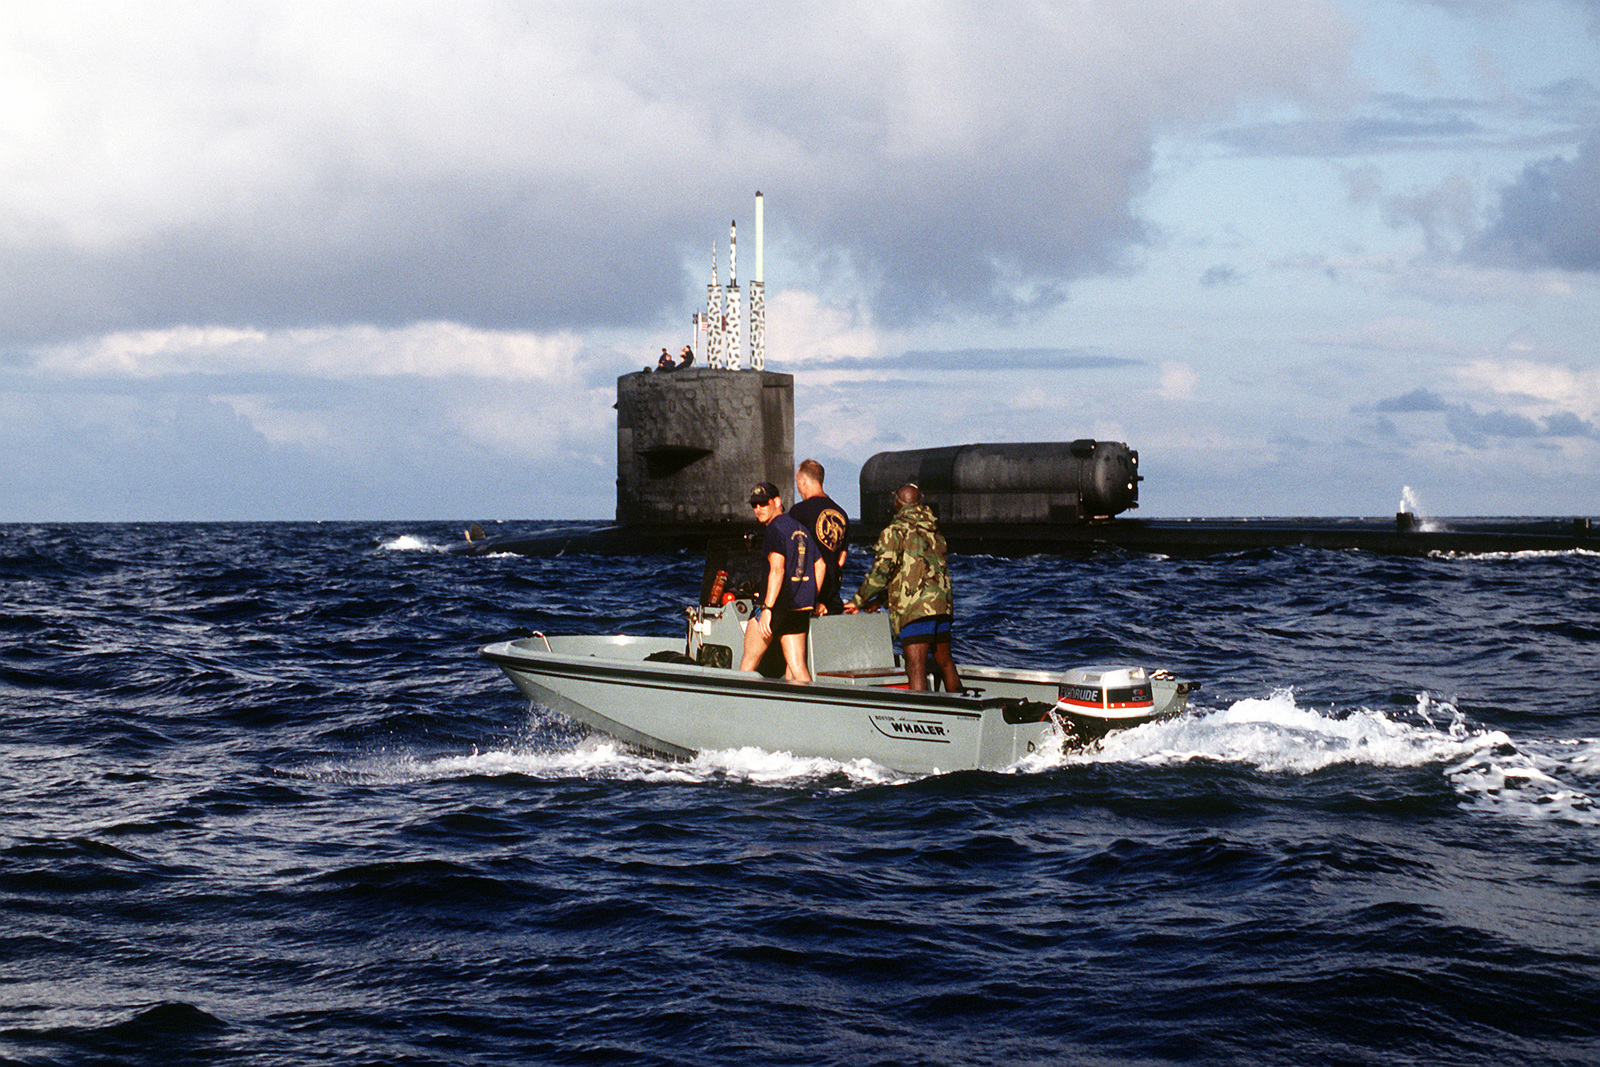 Navy divers approach the nuclear-powered attack submarine USS